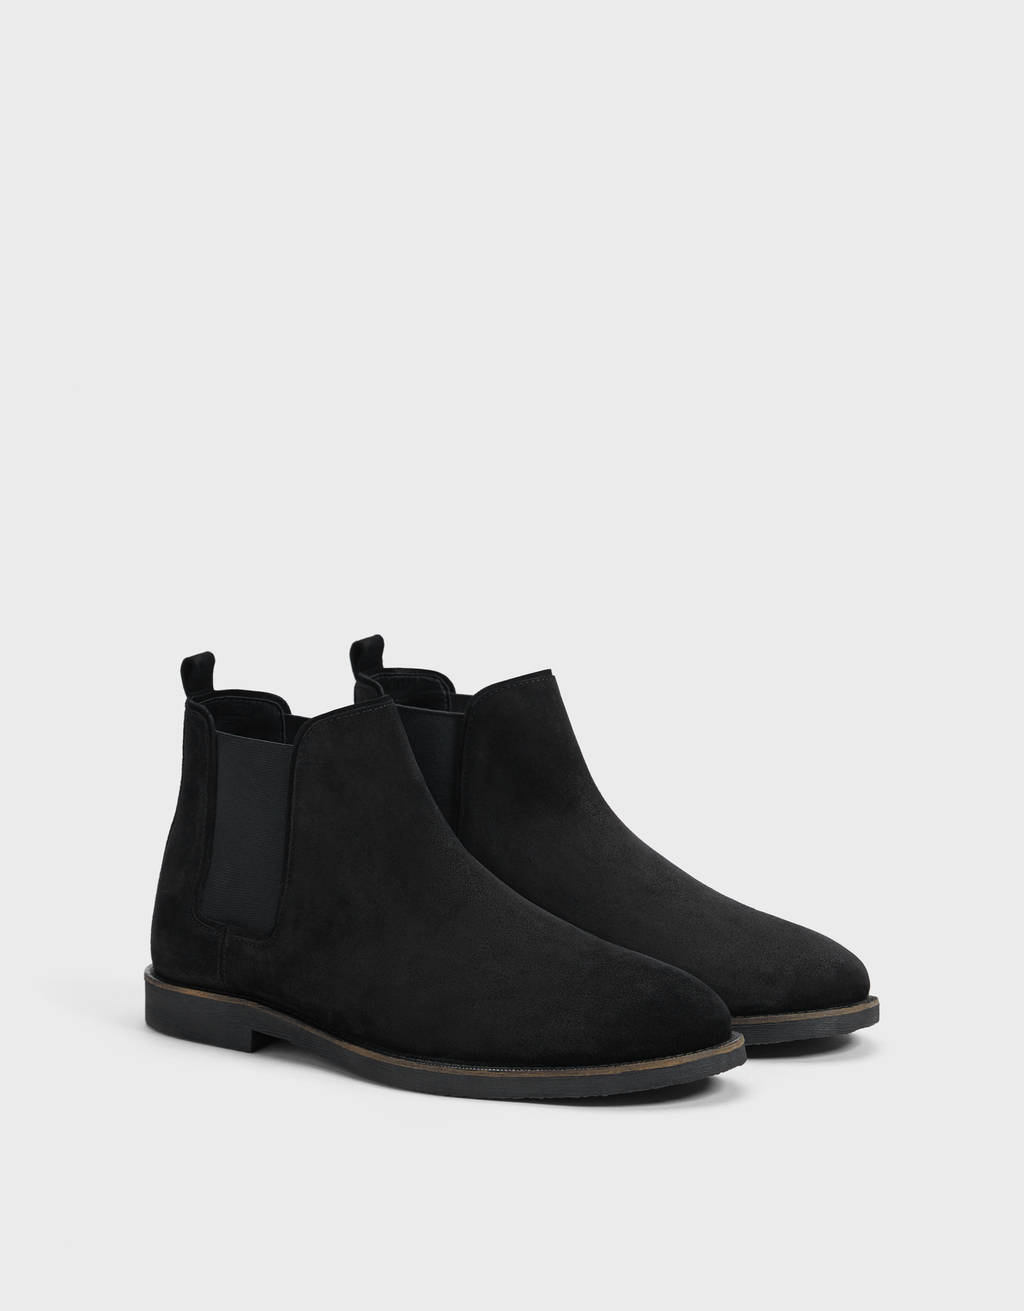 Men's LEATHER ankle boots with gores